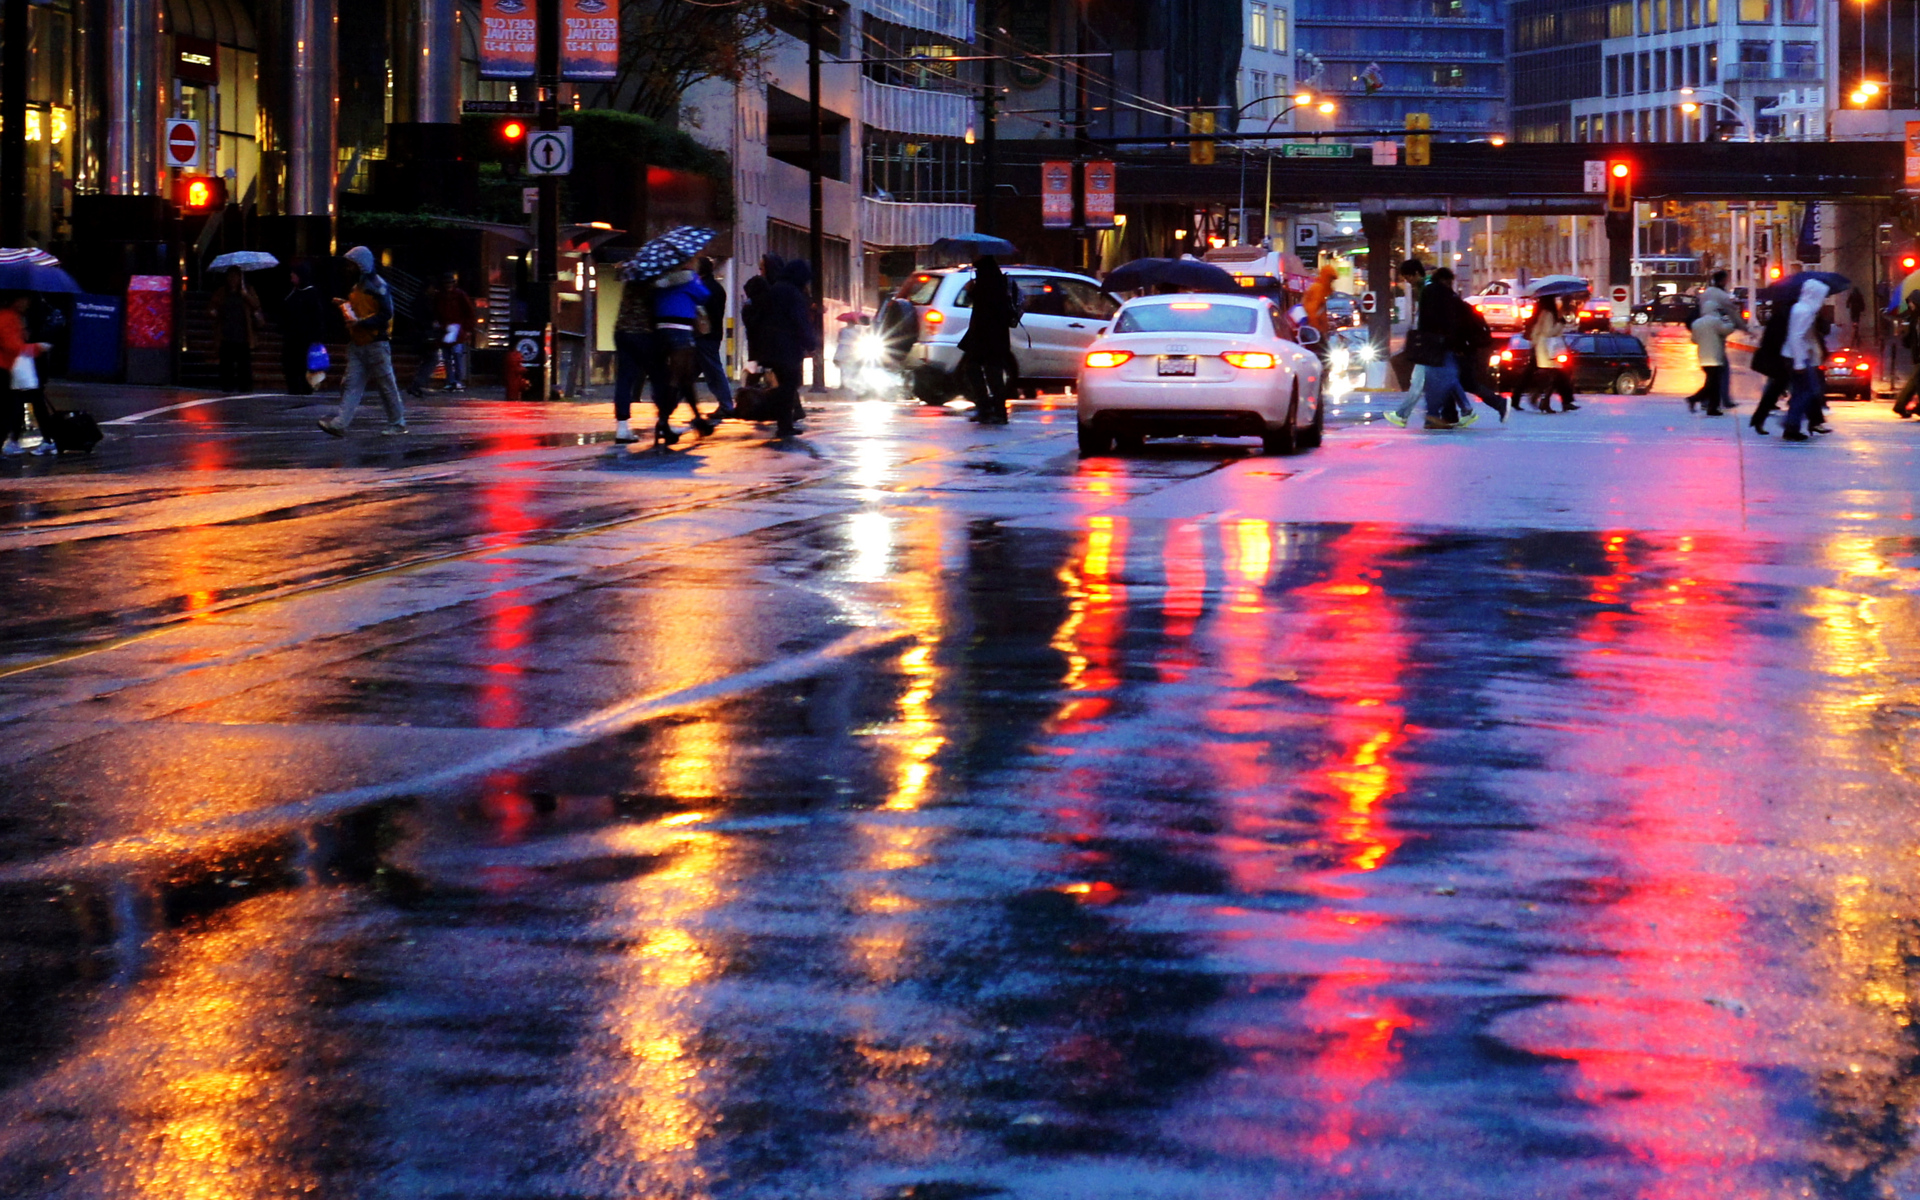 Rainy Street Wallpaper